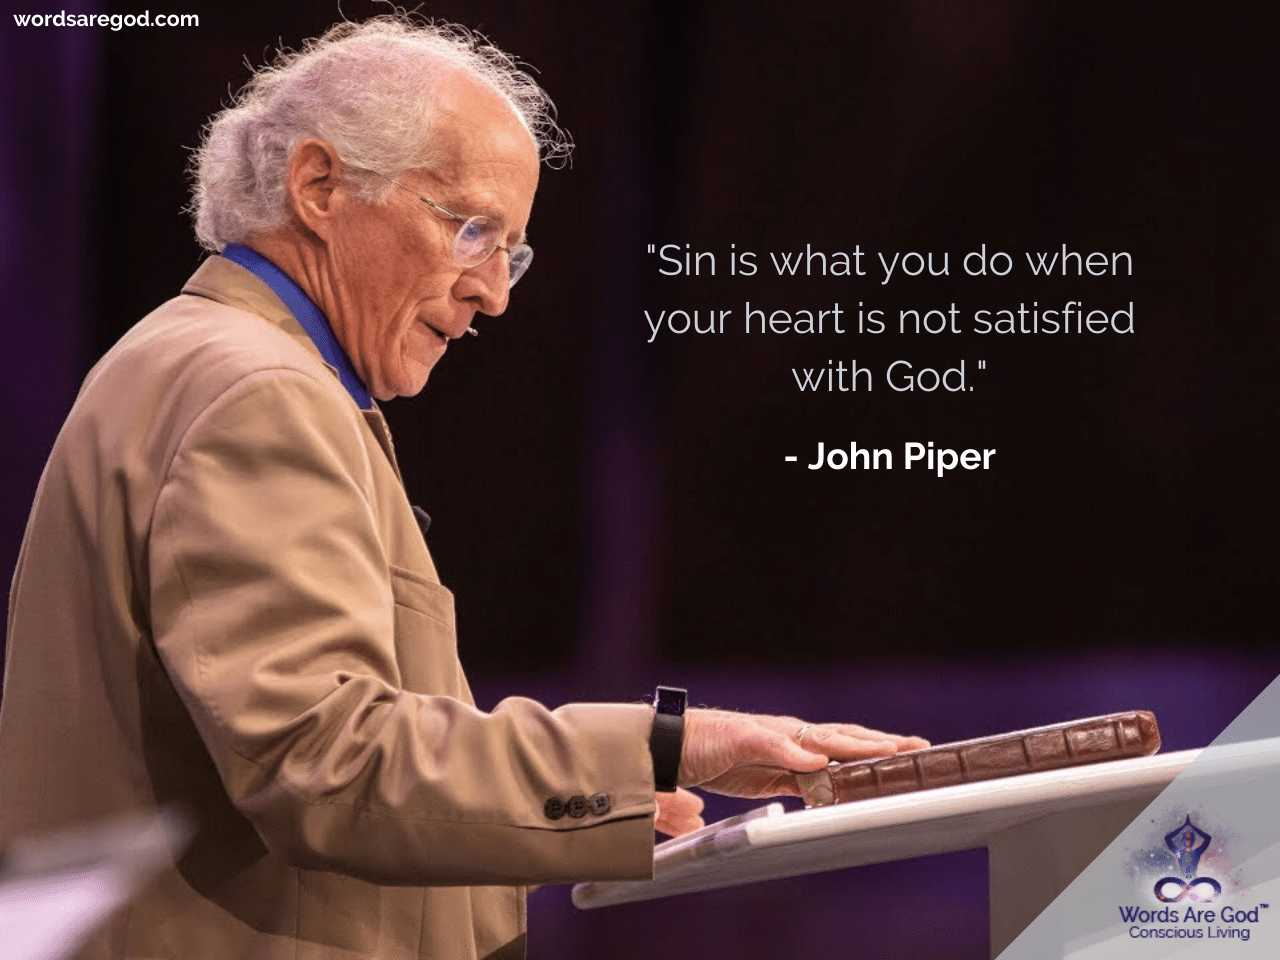 John Piper Motivational Quotes